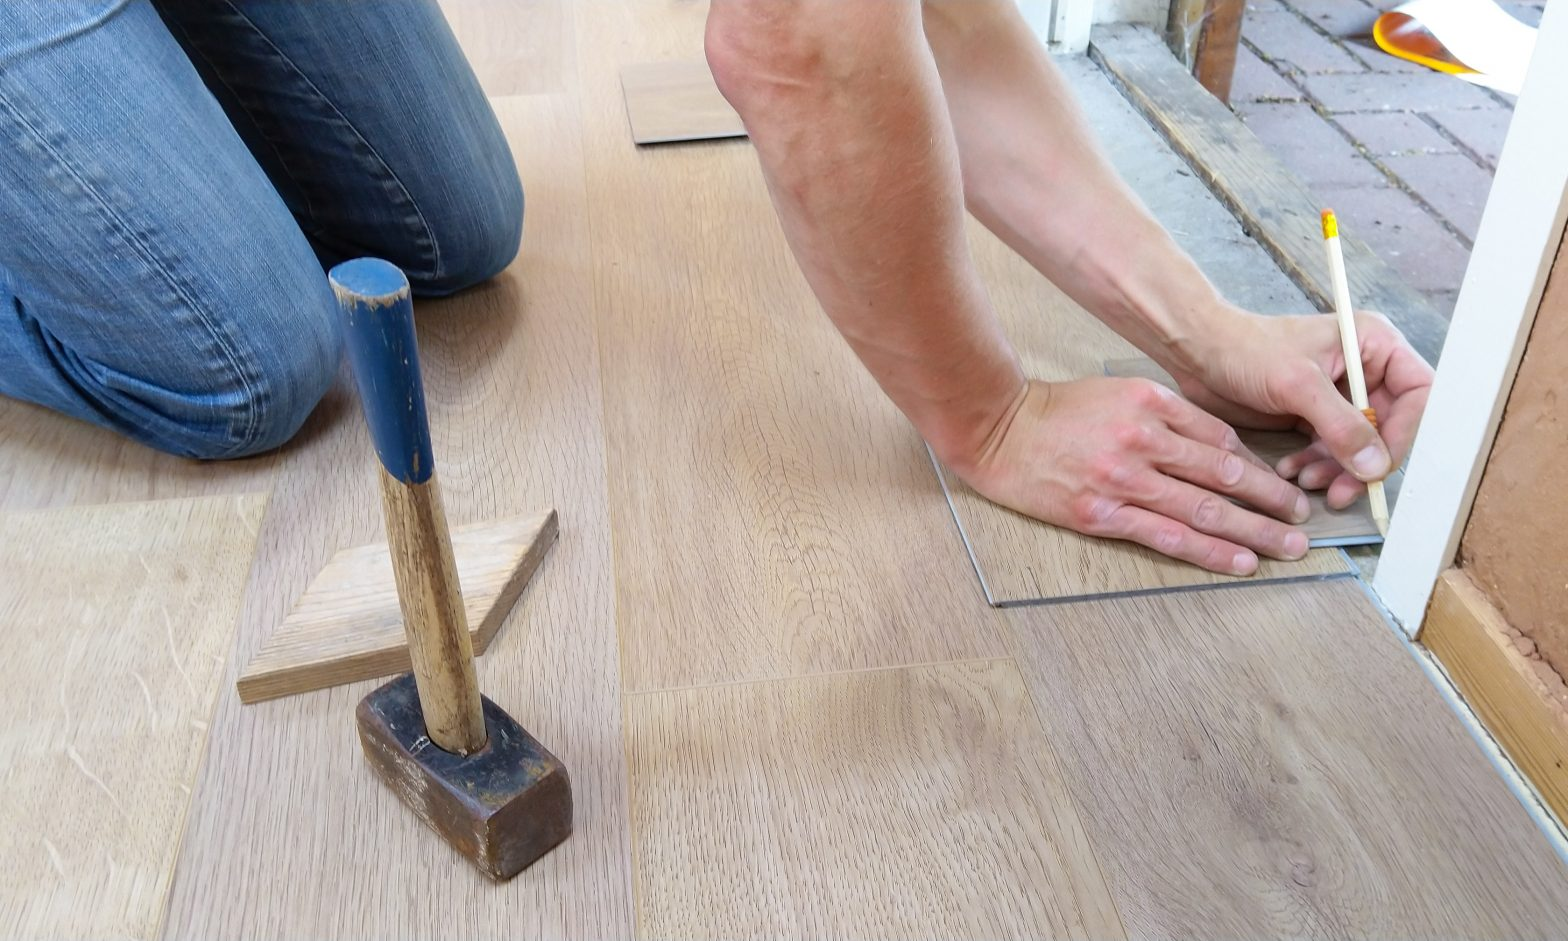 Enduring Collections - Laying Flooring